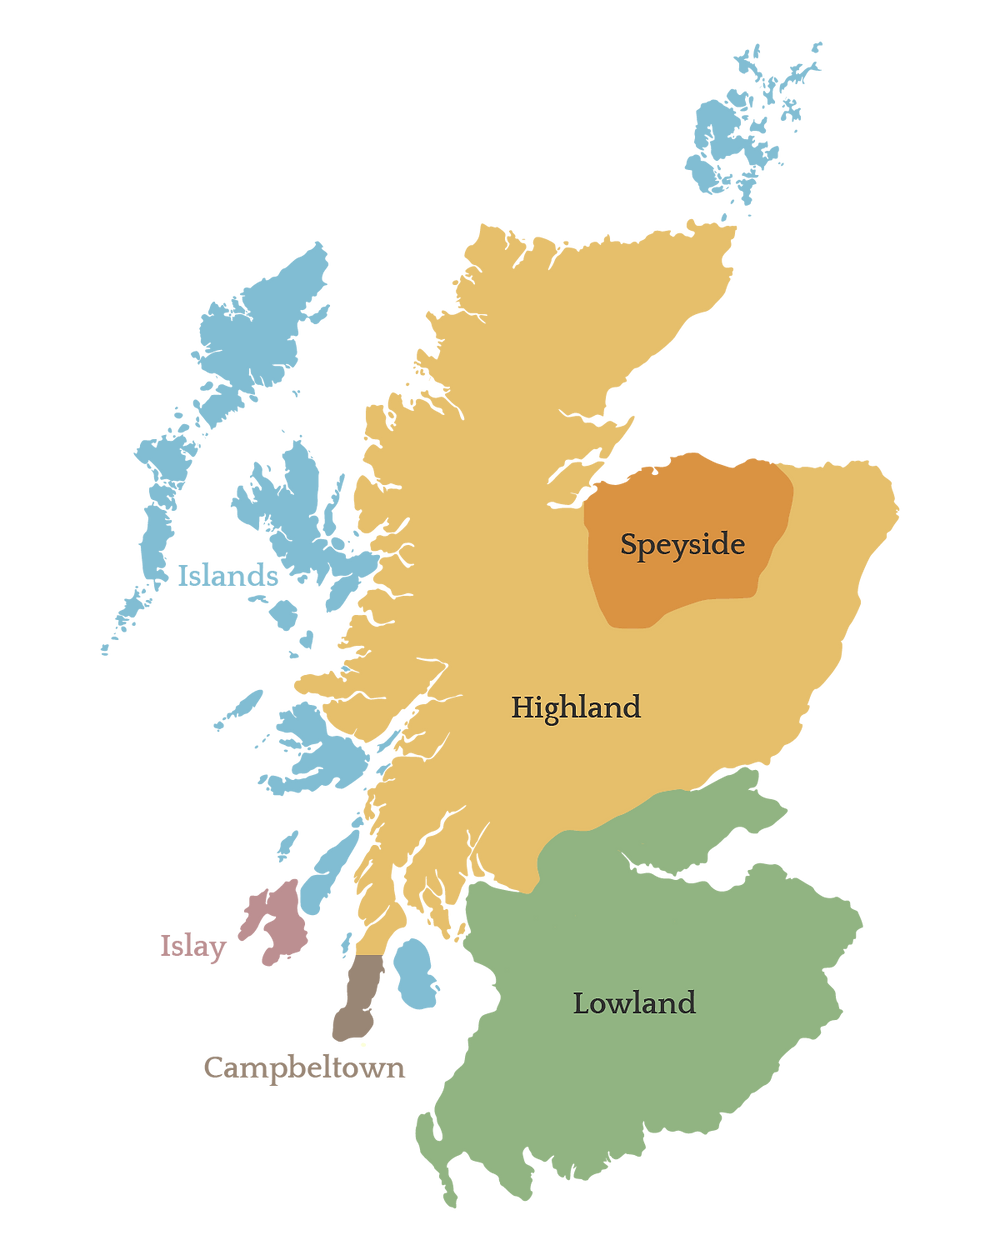 A map of the various Scotch producing regions in Scotland